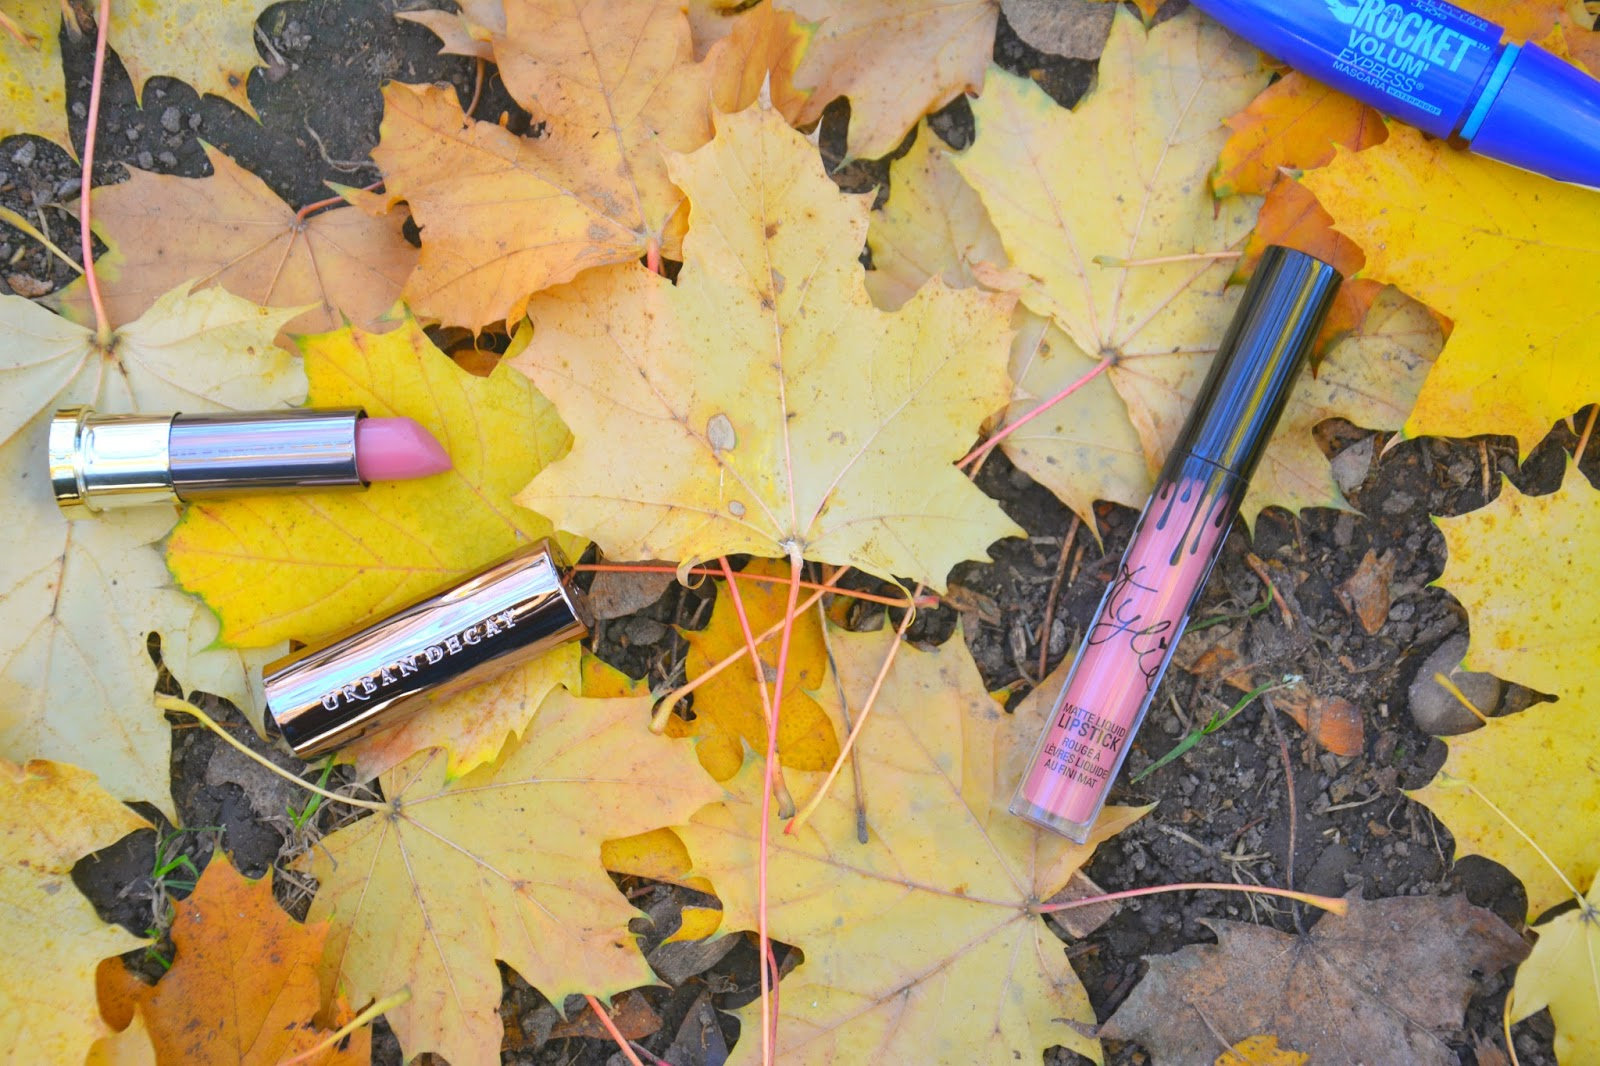 Urban Decay Vice Lipstick, Kylie Liquid Lipstick, Maybelline The Rocket Volum Express Mascara on Autumnal Leaves